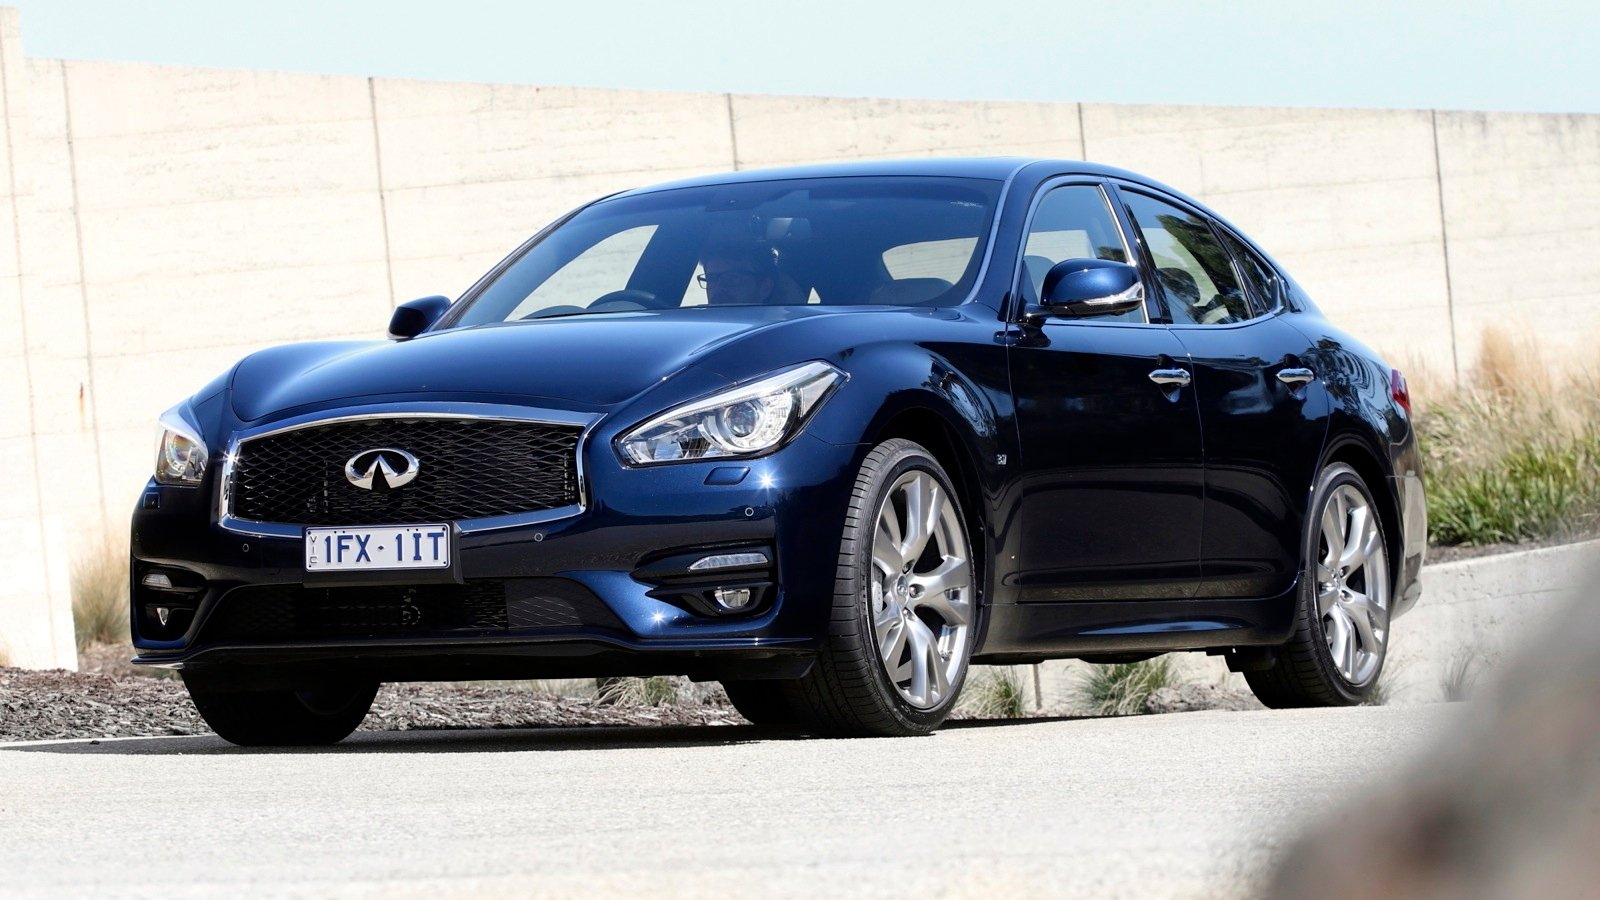 2016 Infiniti Q70 Pricing And Specifications Photos